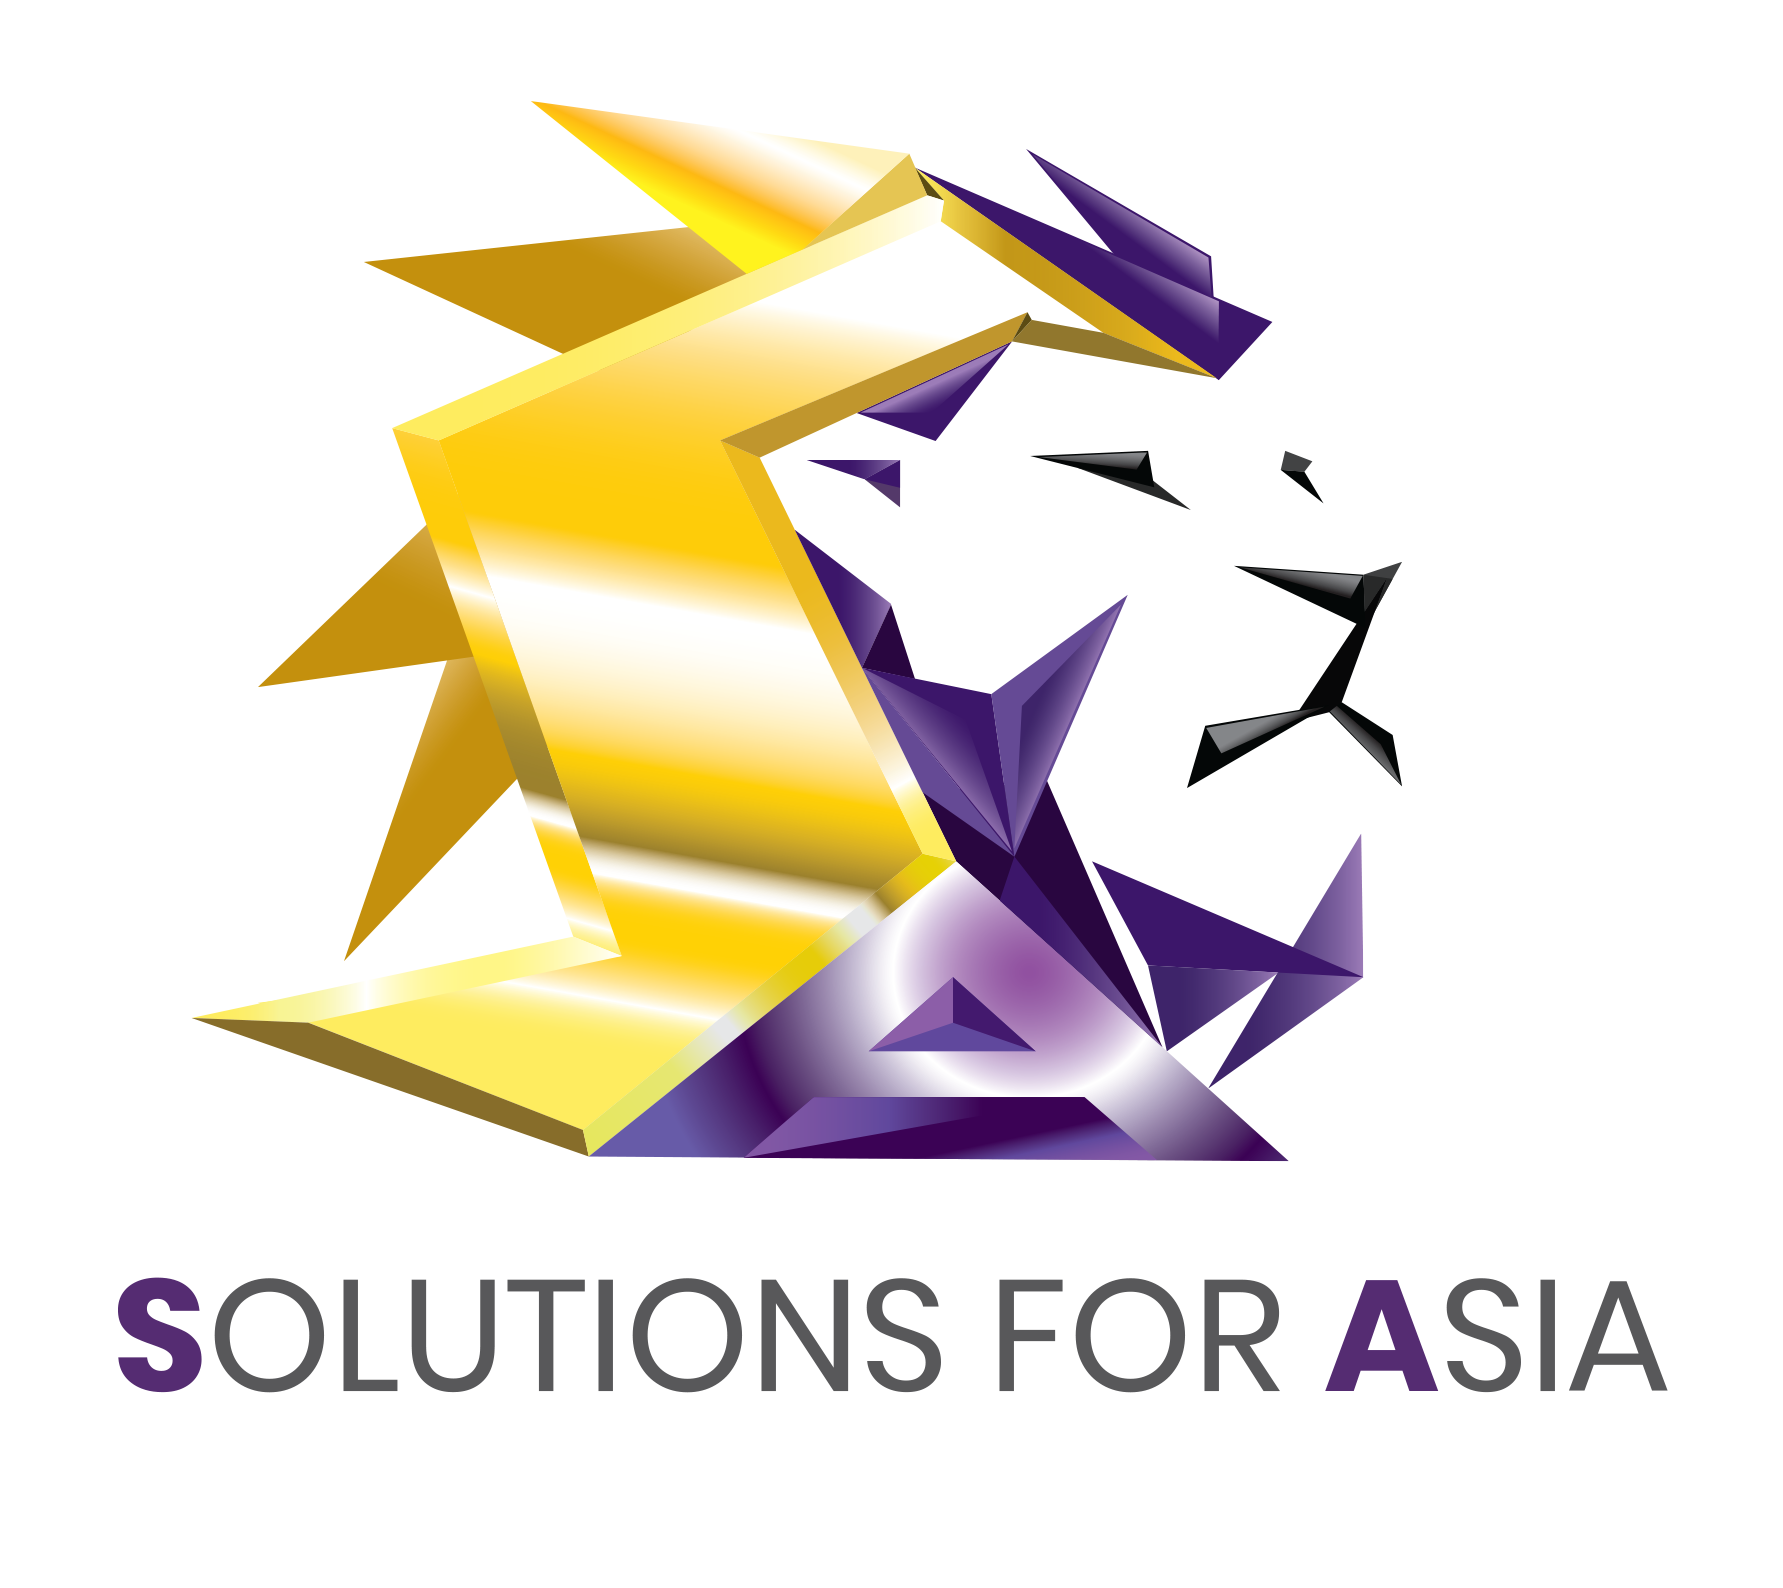 Solutions for Asia